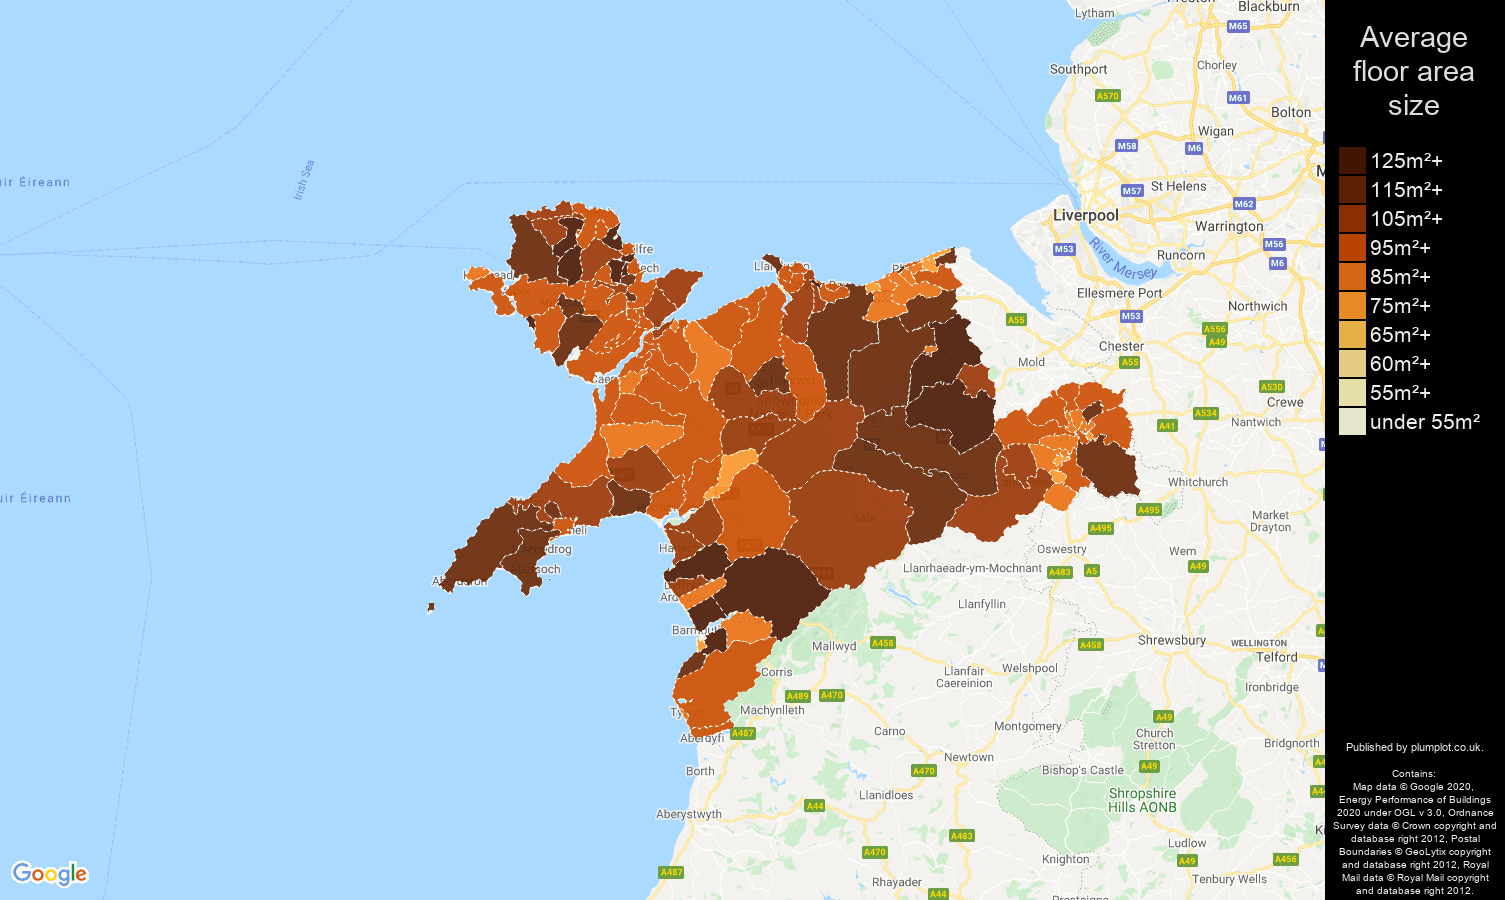 Llandudno map of average floor area size of houses